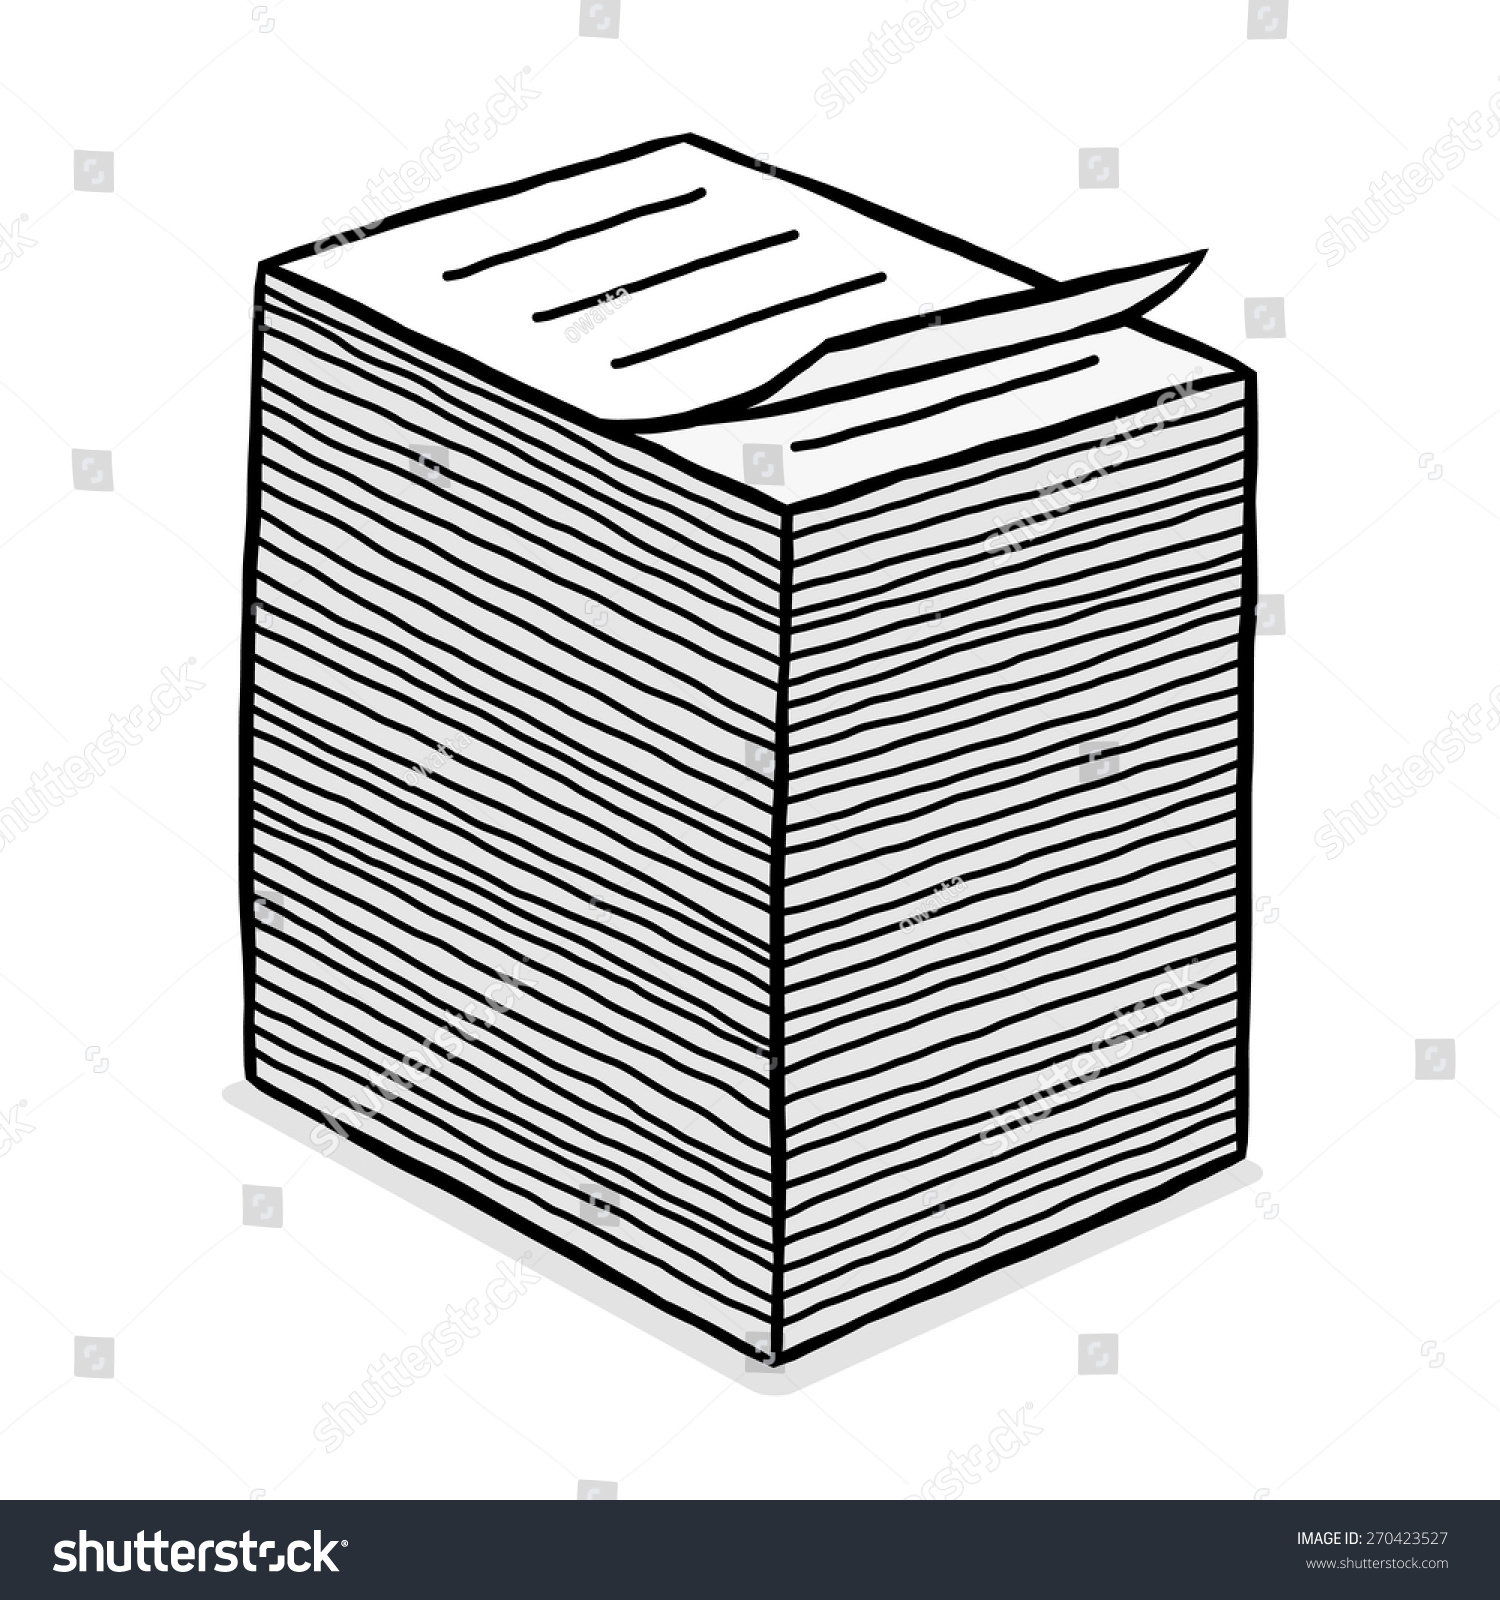 paper stack clipart - photo #6